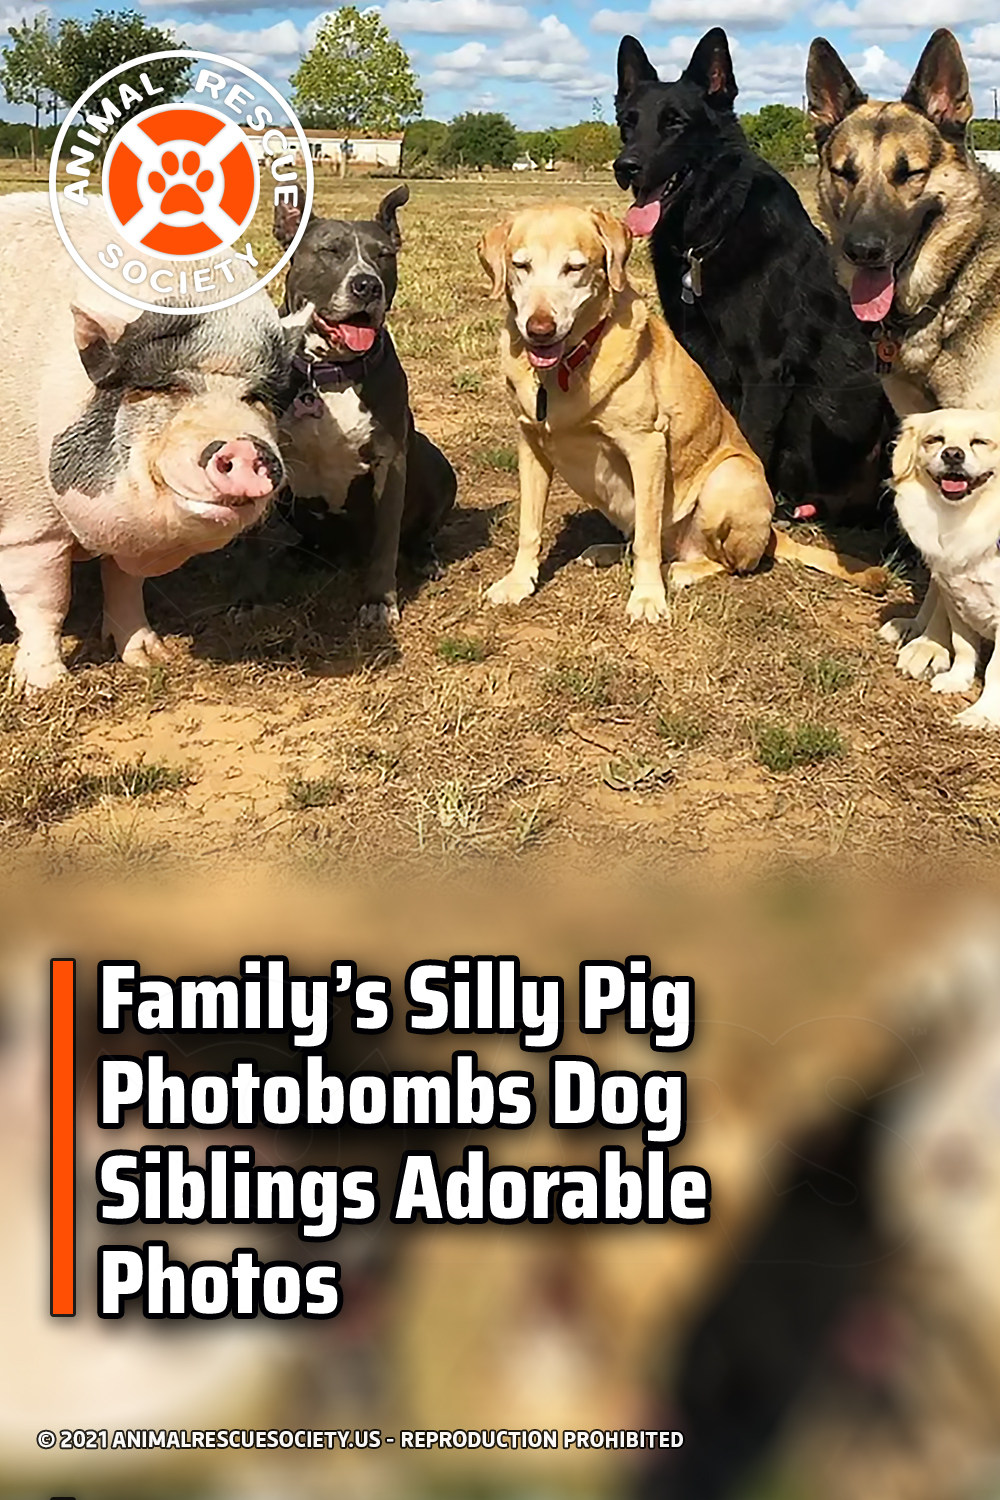 Family's Silly Pig Photobombs Dog Siblings Adorable Photos